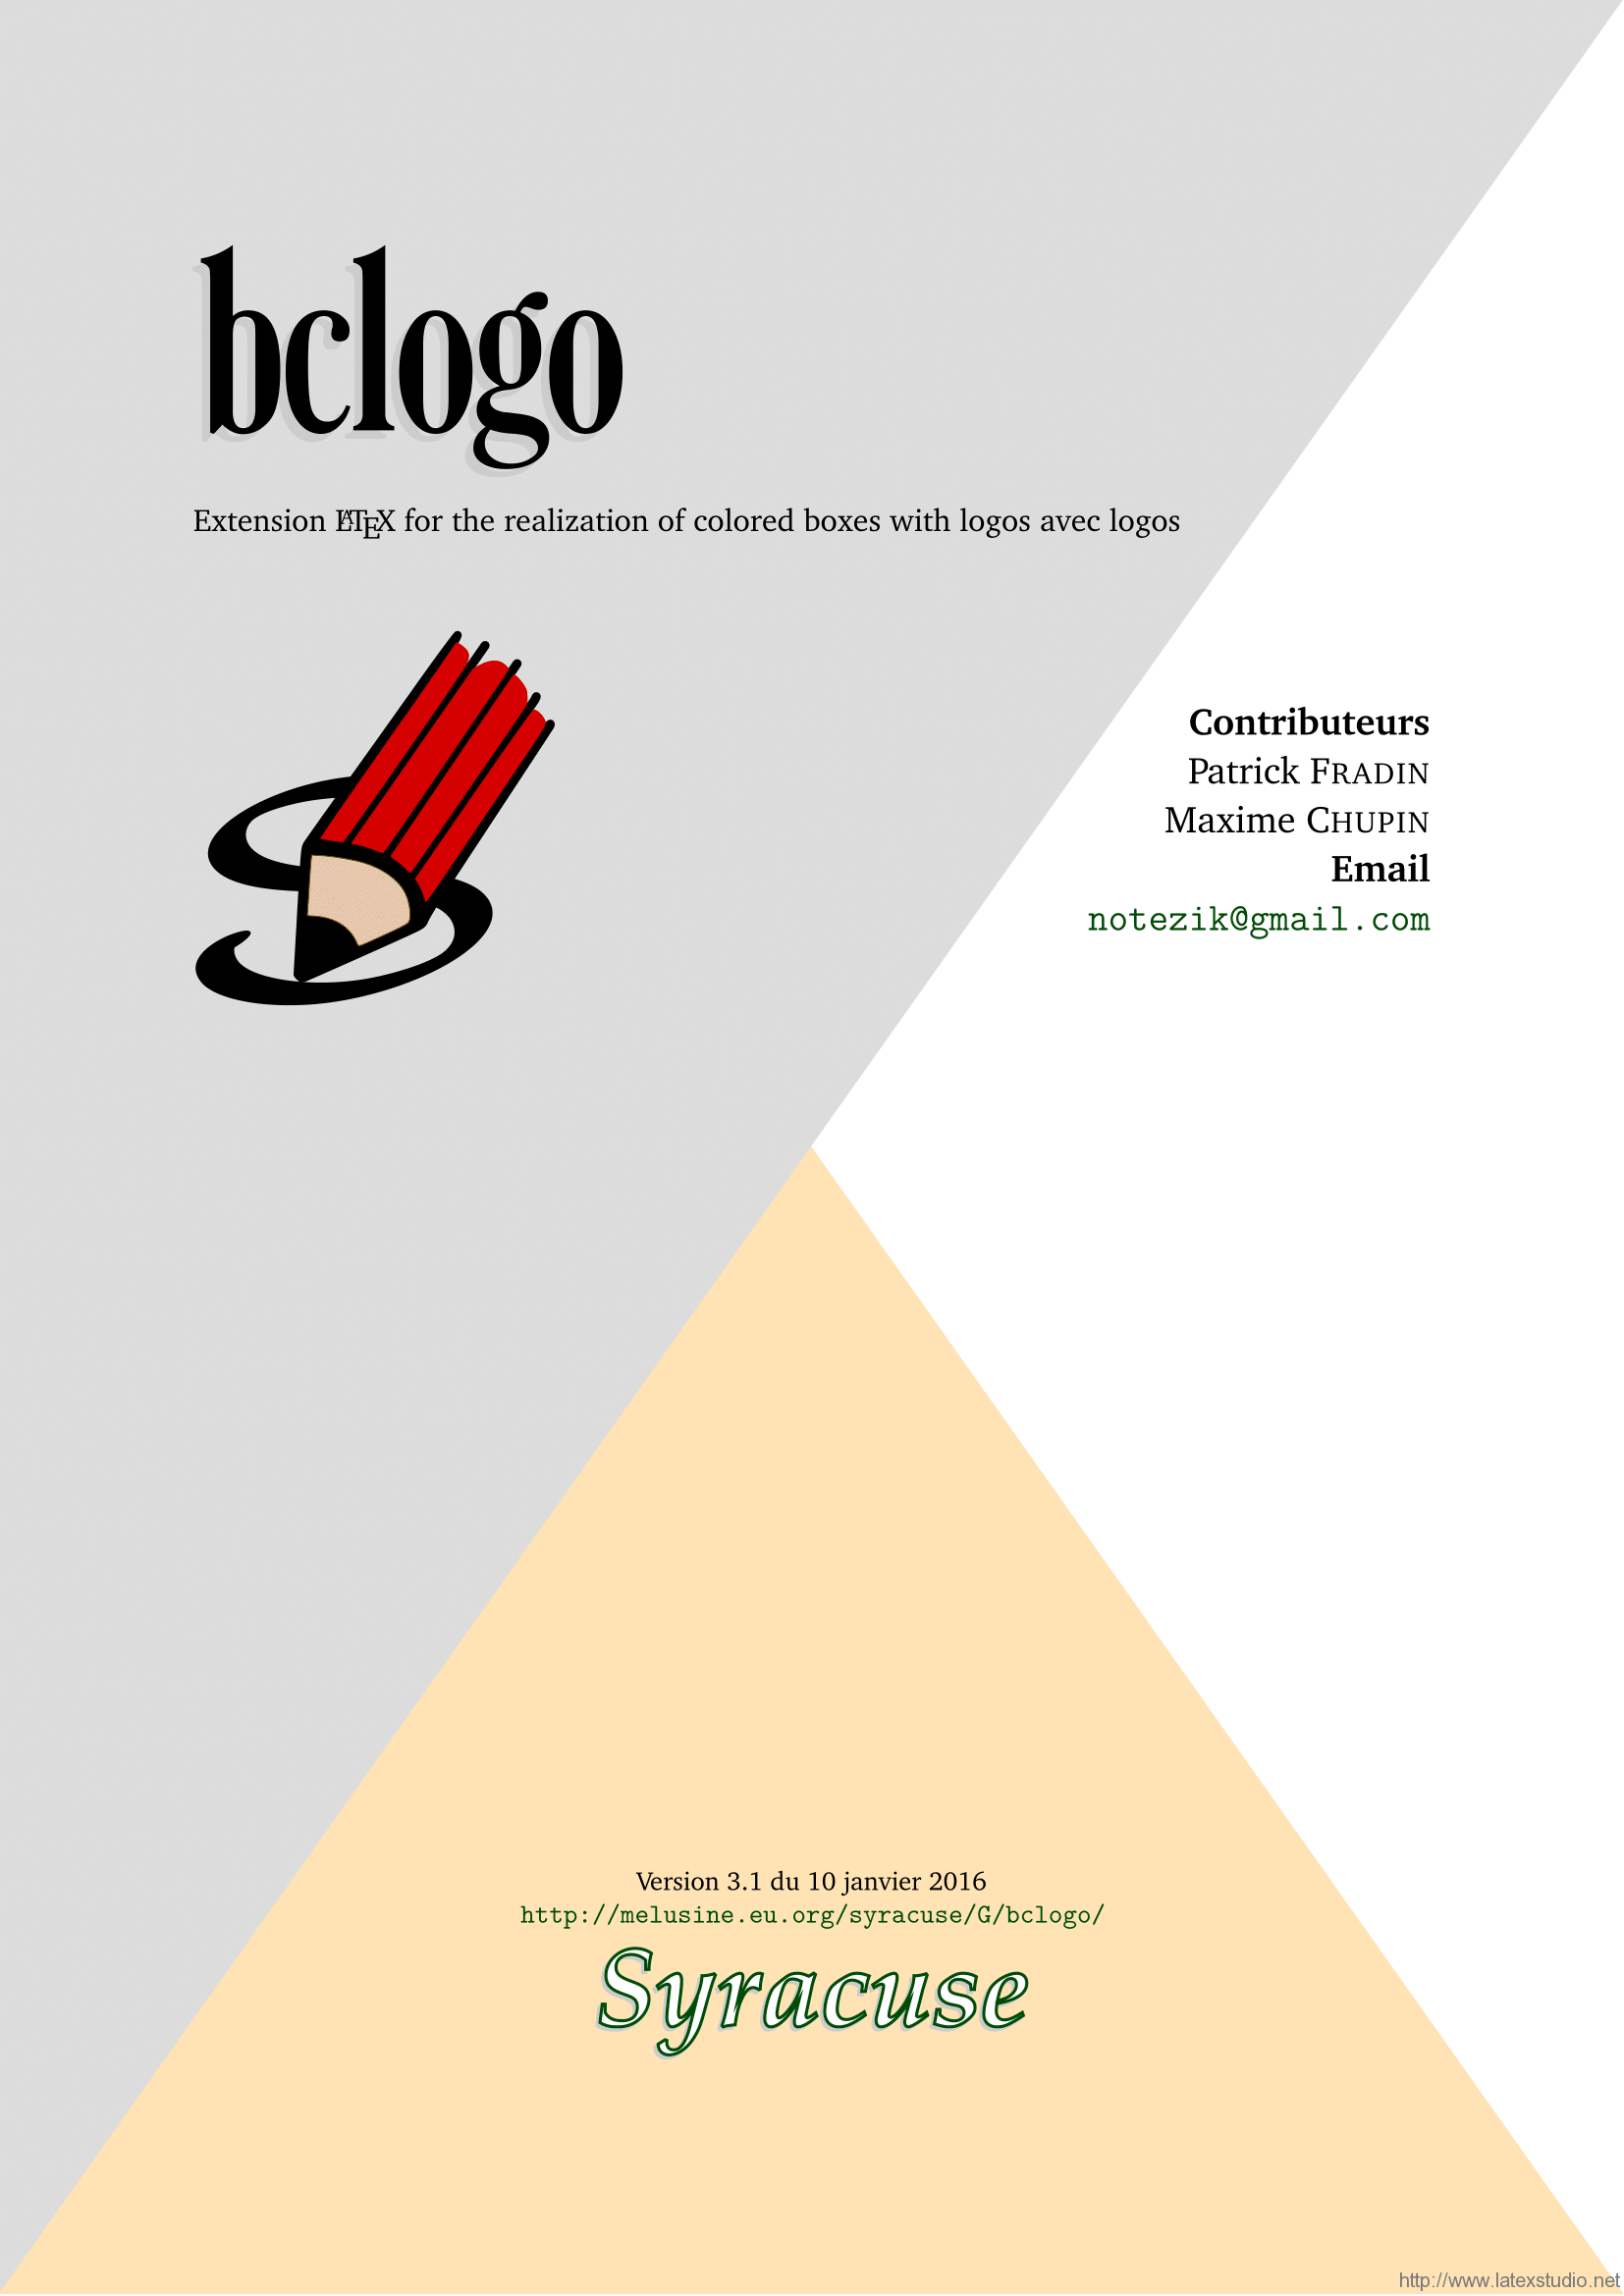 bclogo-cover-1